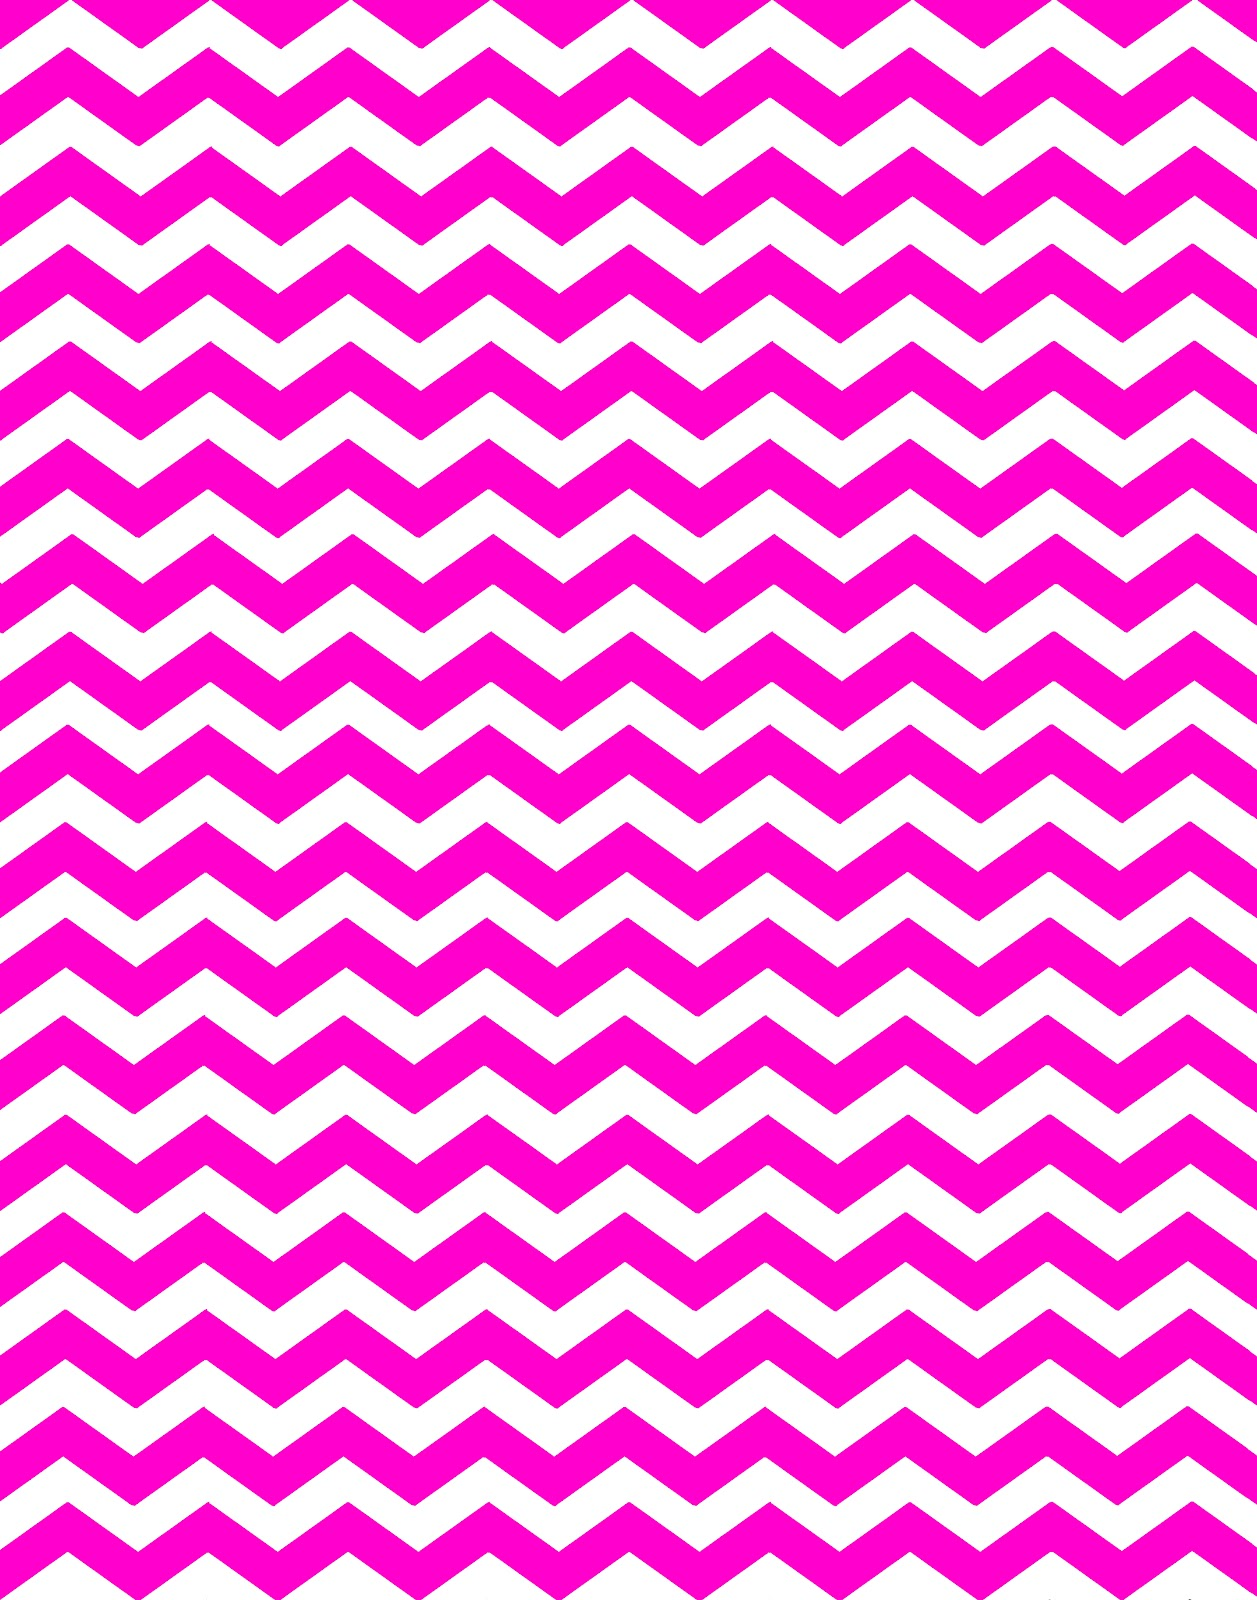 Pink And White Chevron Wallpaper Wallpapersafari